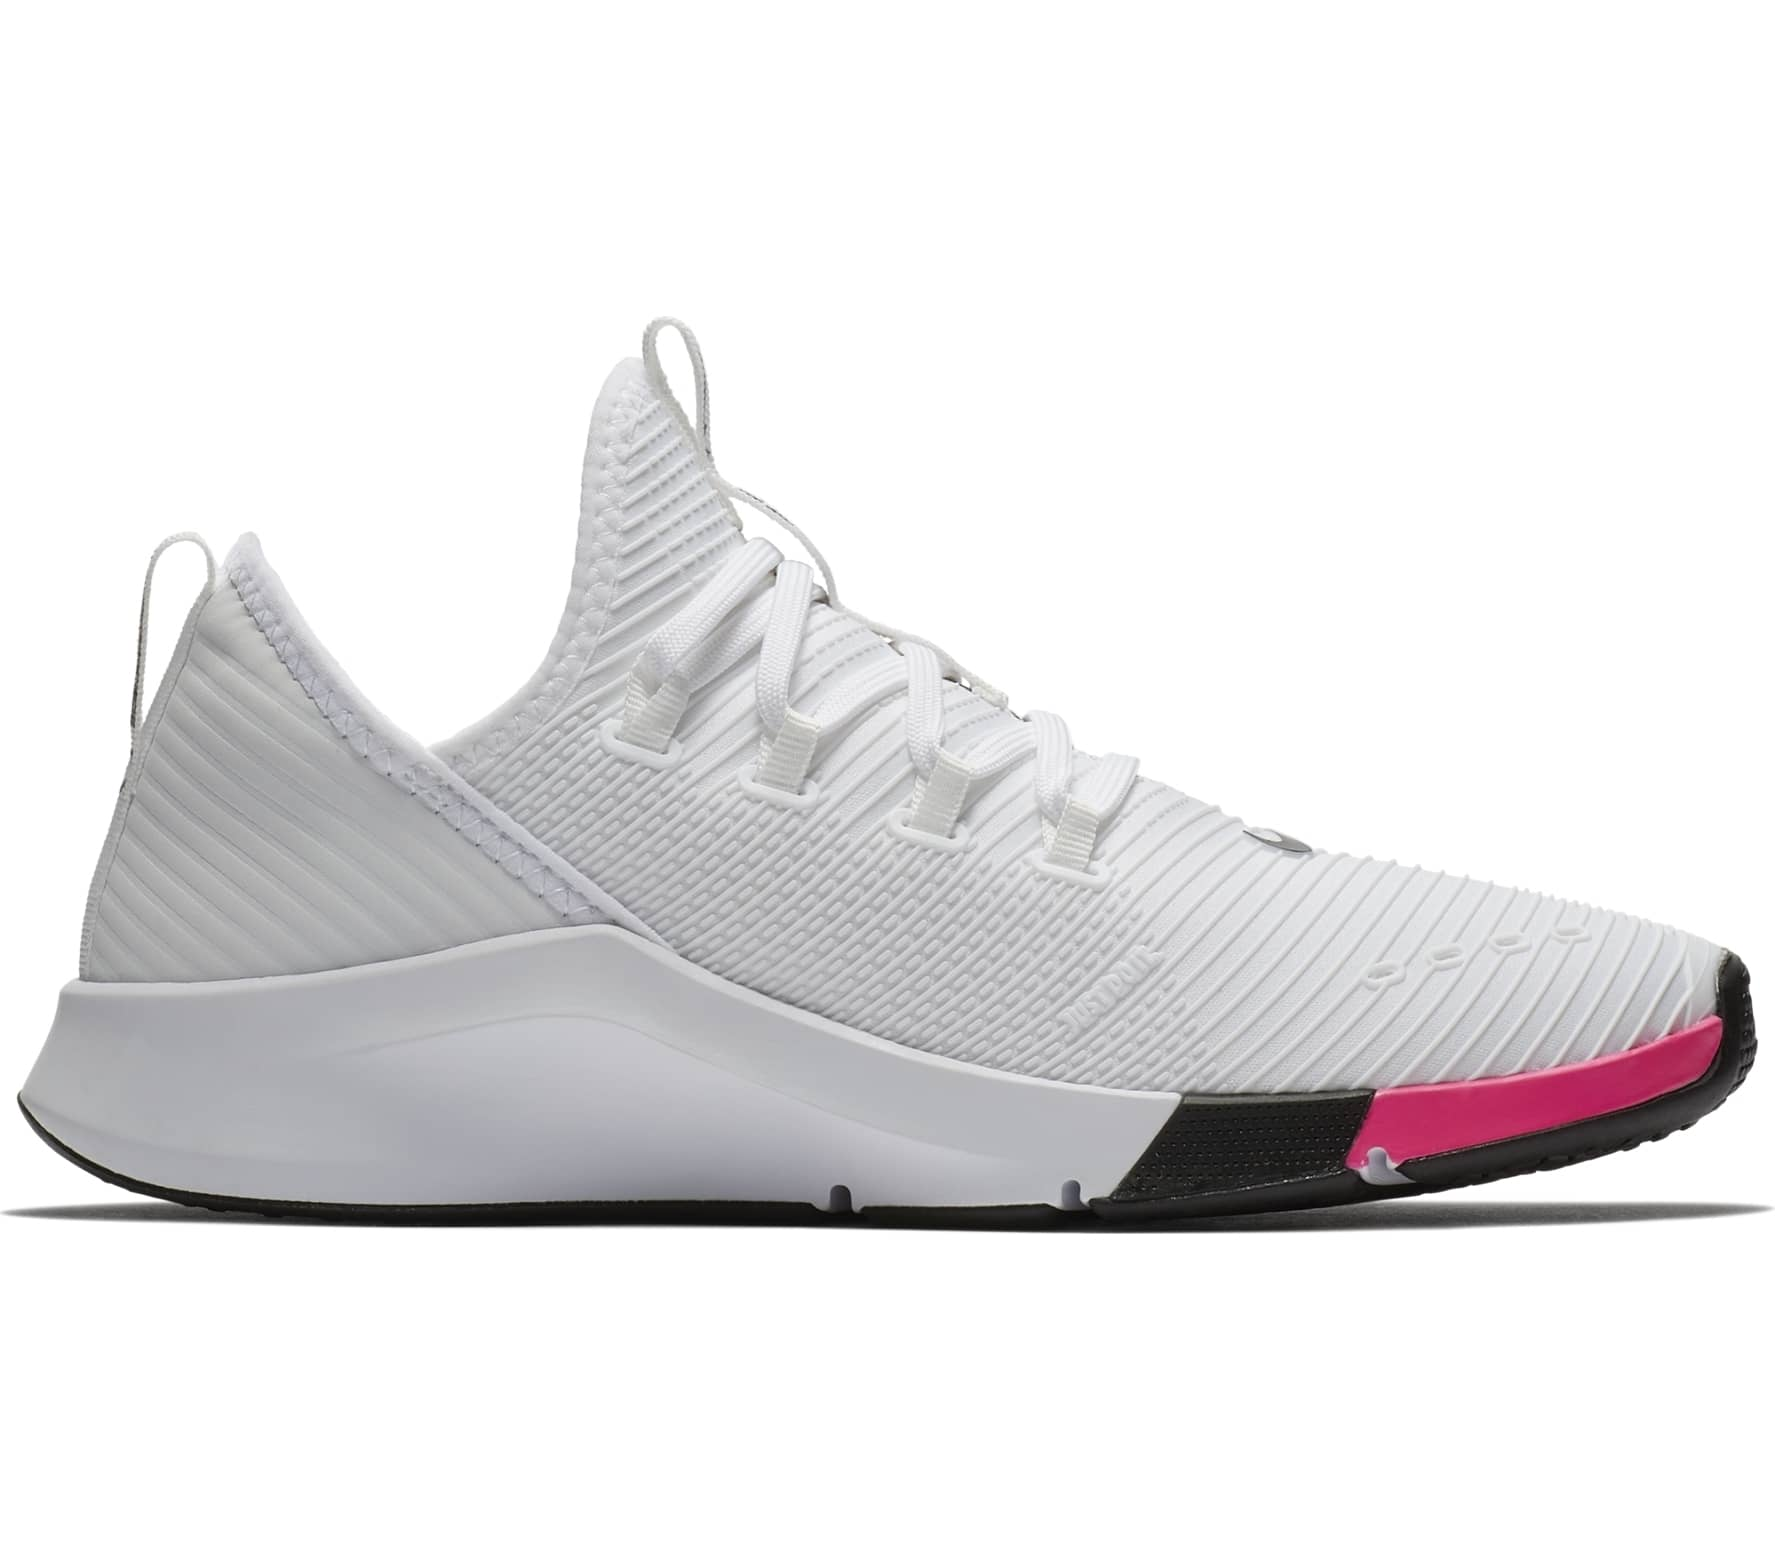 online store 3f132 83cc7 Nike - Air Zoom Fitness 2 women s training shoes (white)